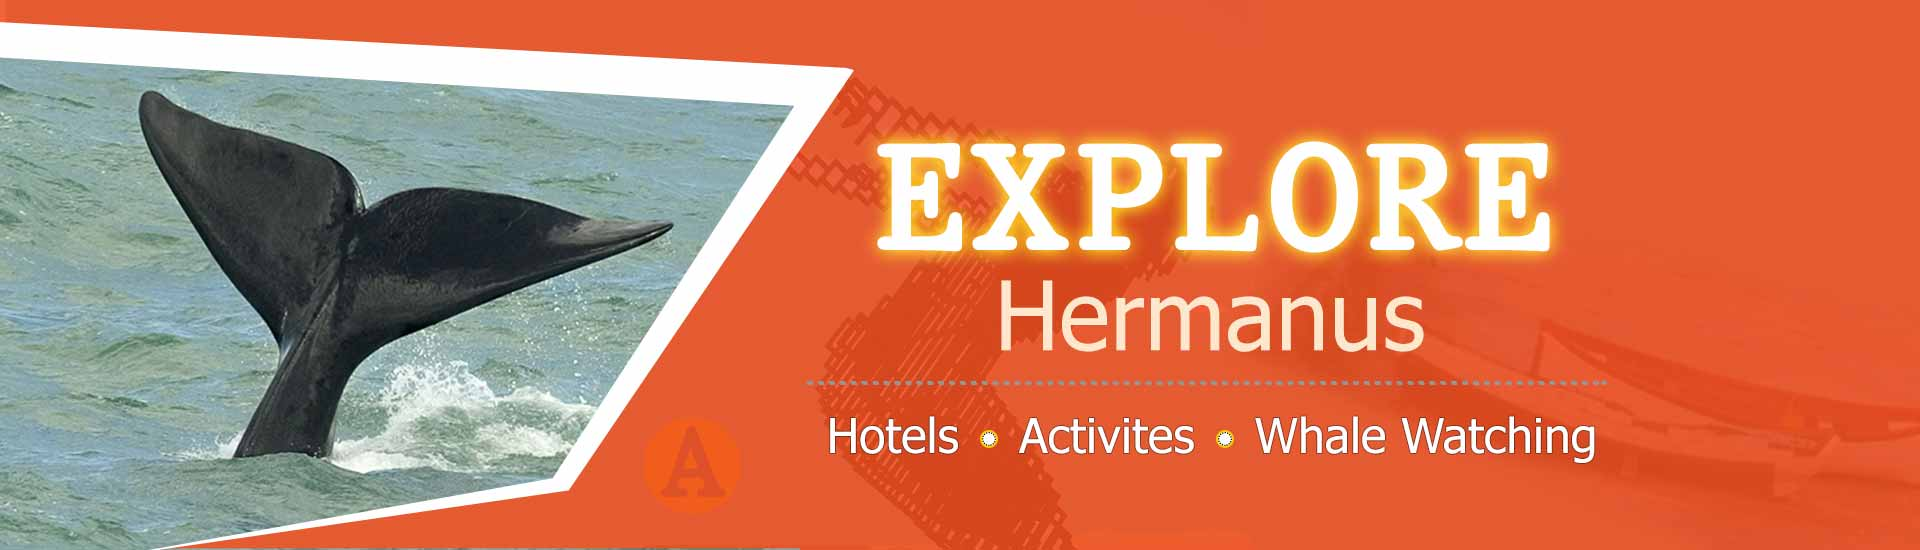 Book your Hermanus Accommodation and Activities with Authentick Travel